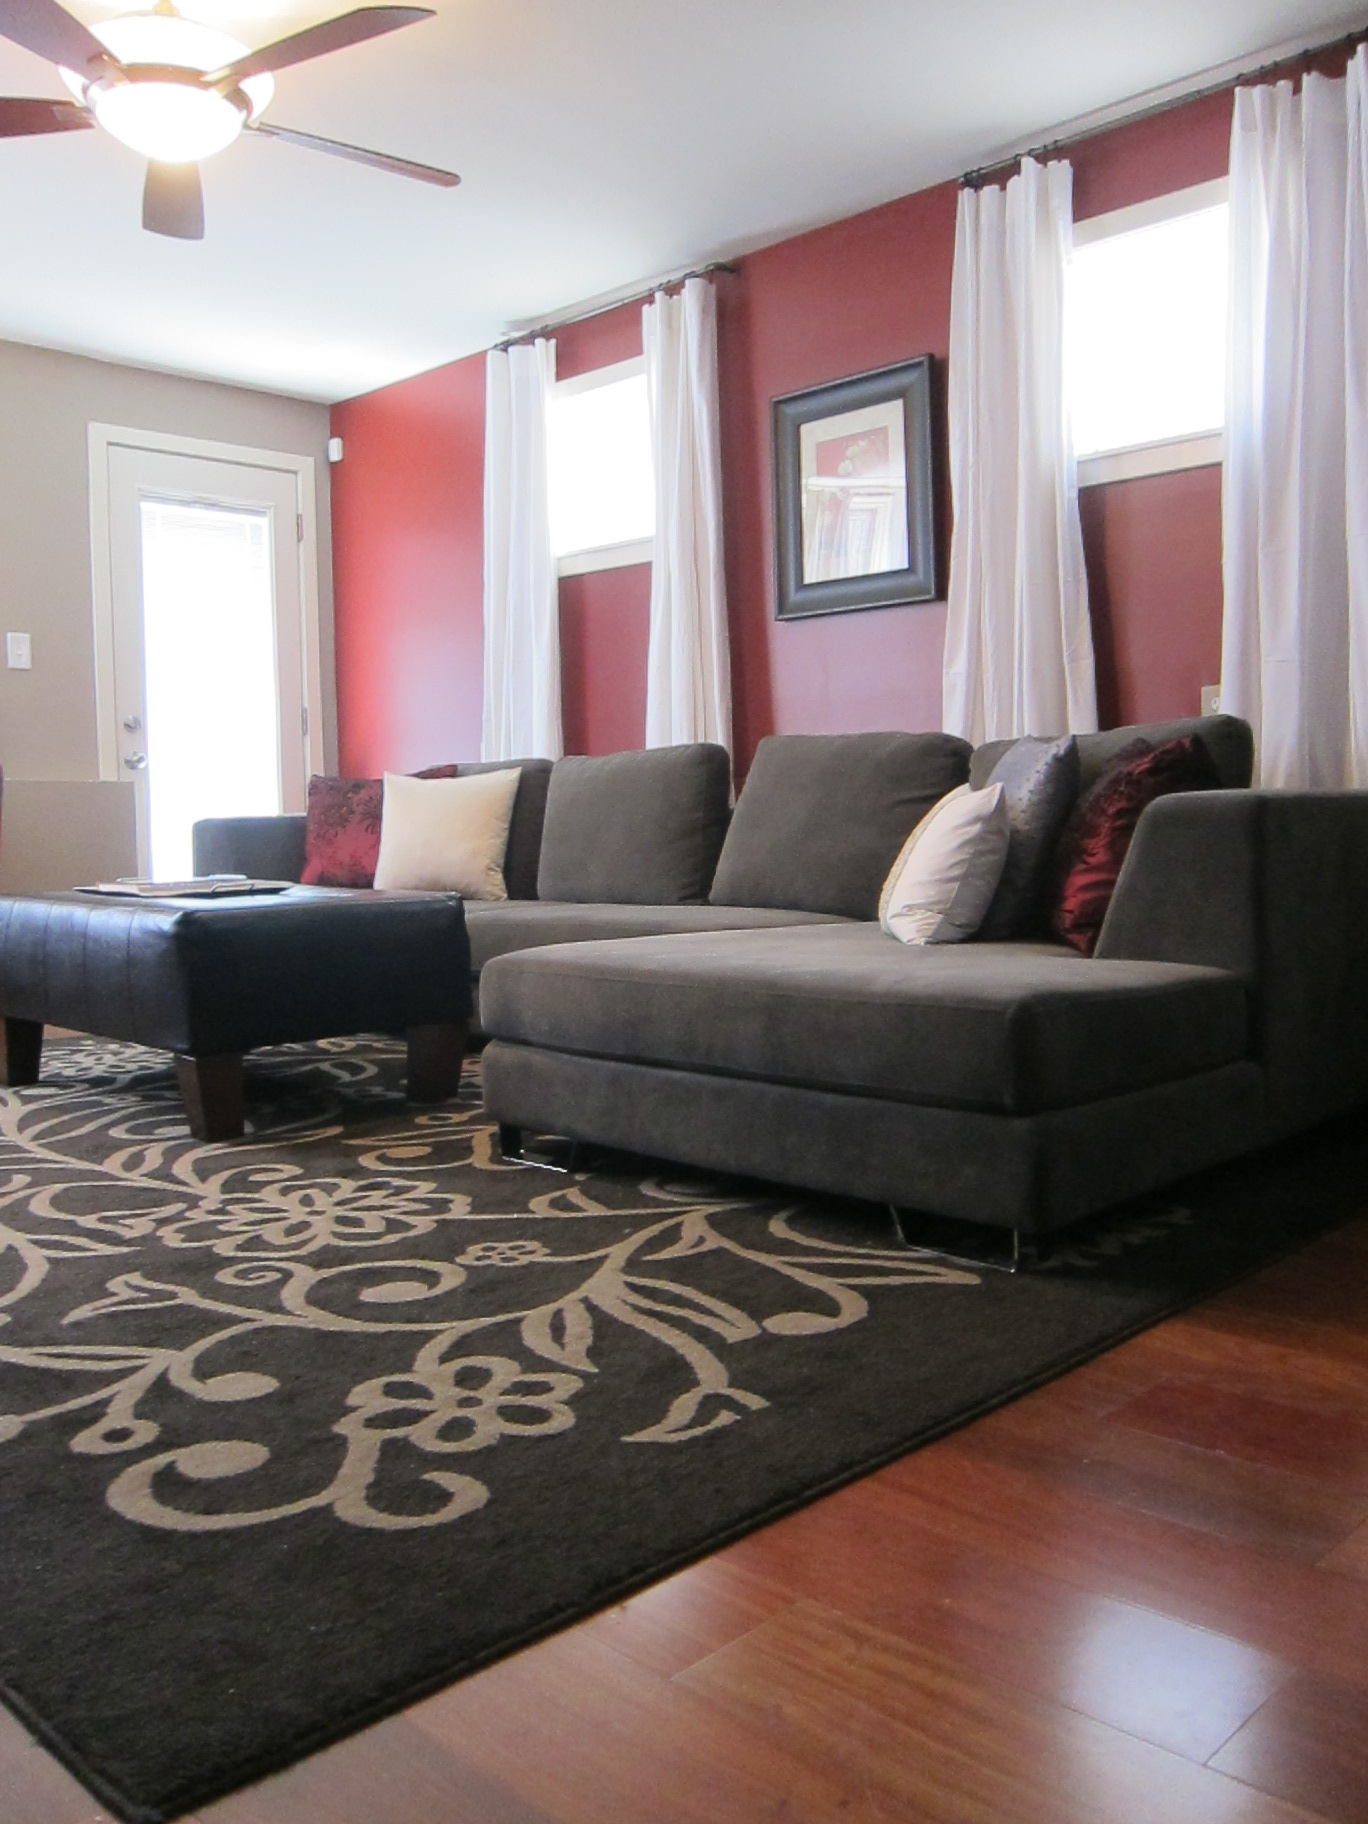 Wall Accents Behind Tv Or Couch With Regard To Favorite A Philadelphia Tv Host's Home! Complete With A Red Accent Wall (View 14 of 15)